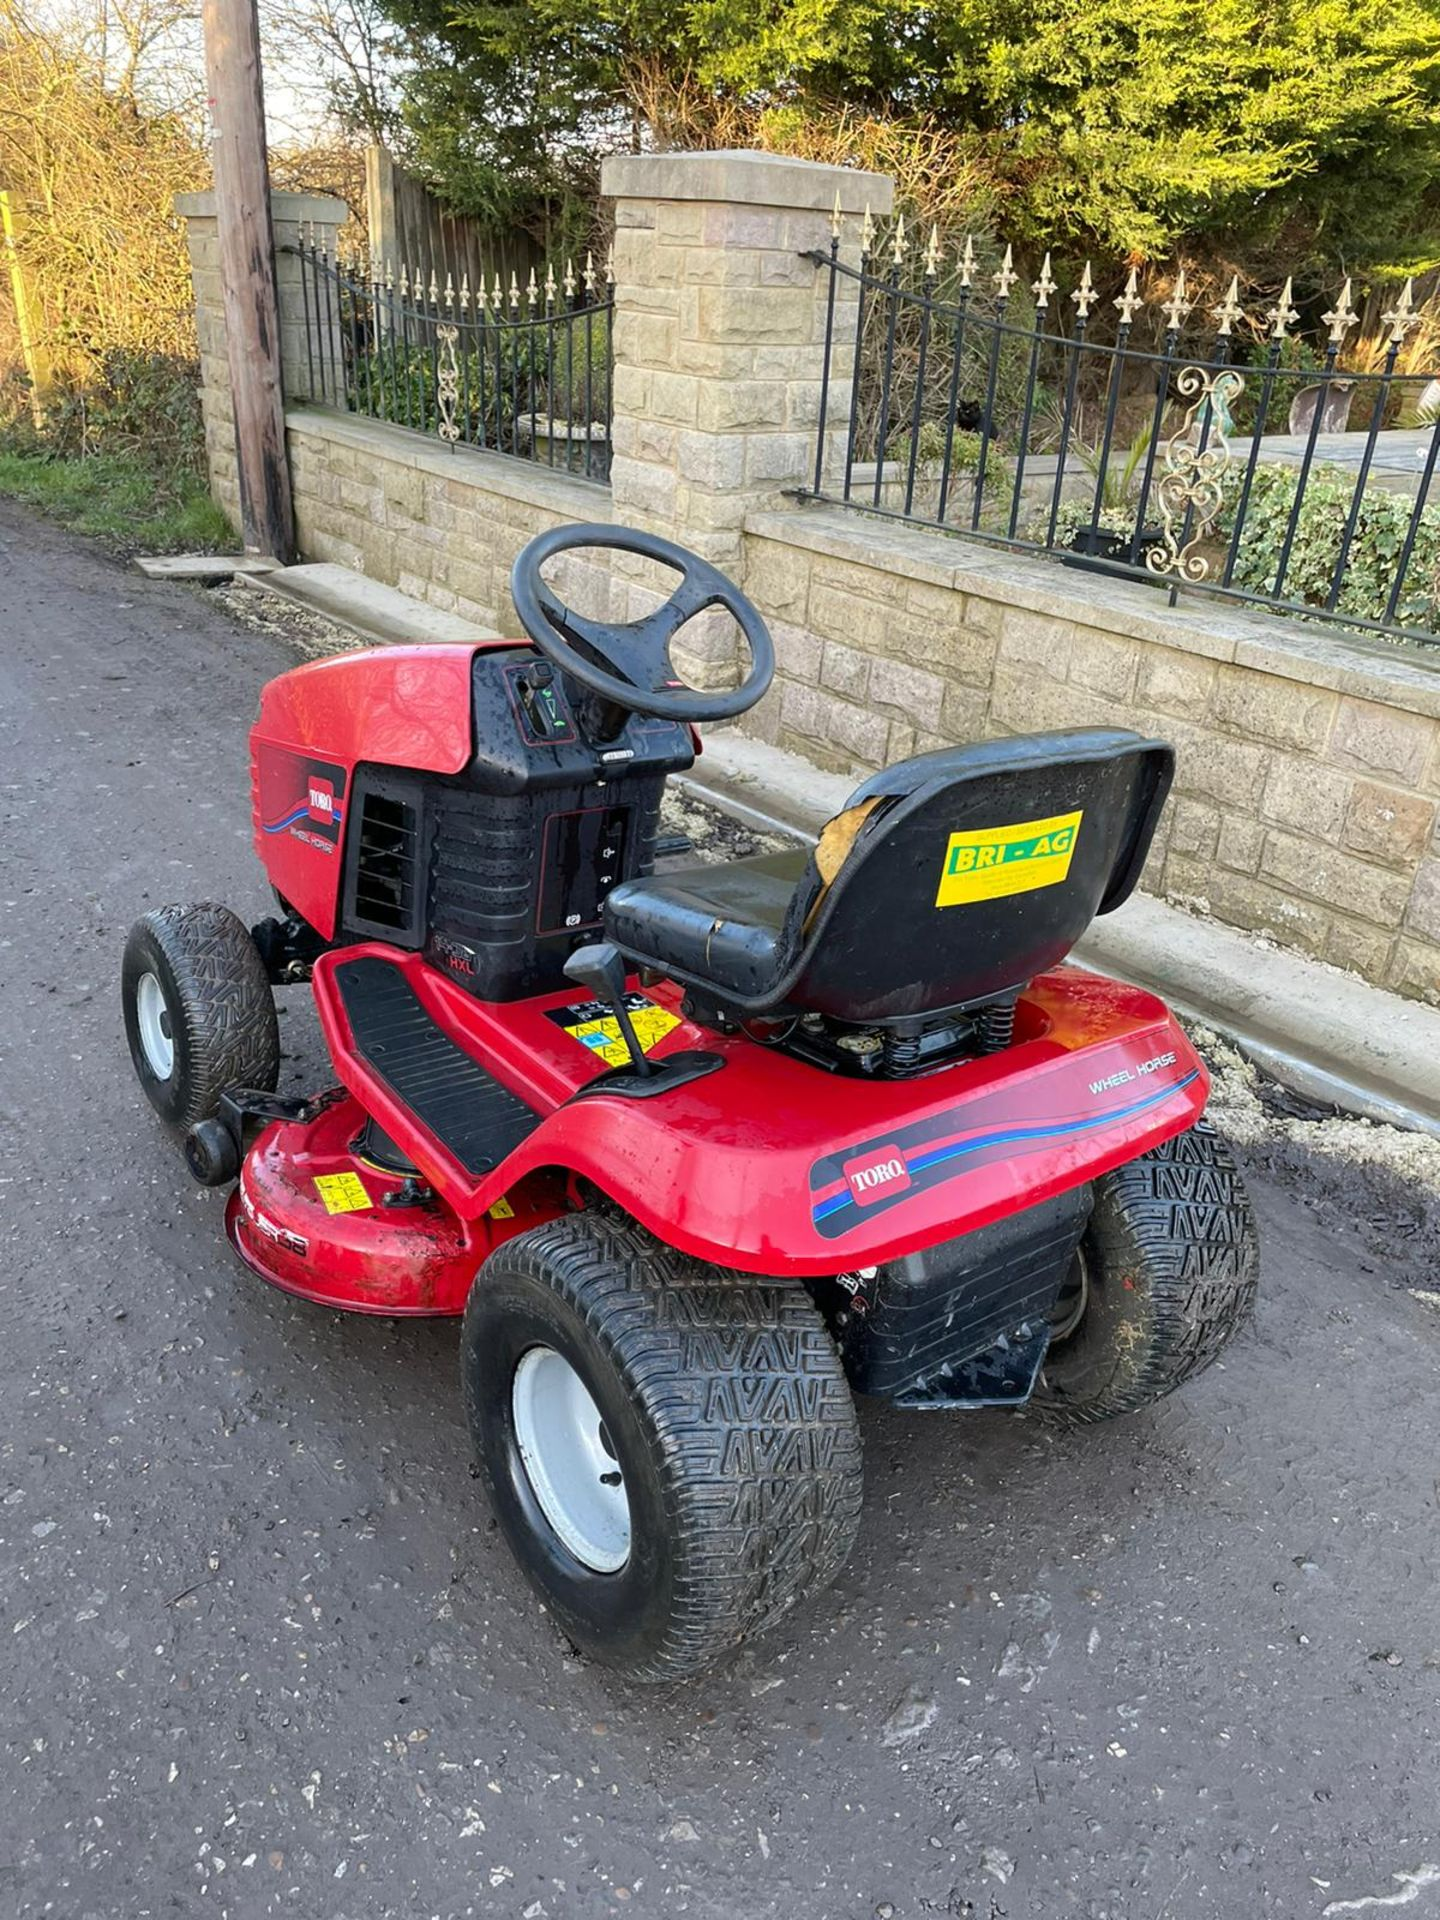 TORO 14-38 HXL RIDE ON MOWER, RUNS, DRIVES AND CUTS, CLEAN MACHINE *NO VAT* - Image 6 of 6